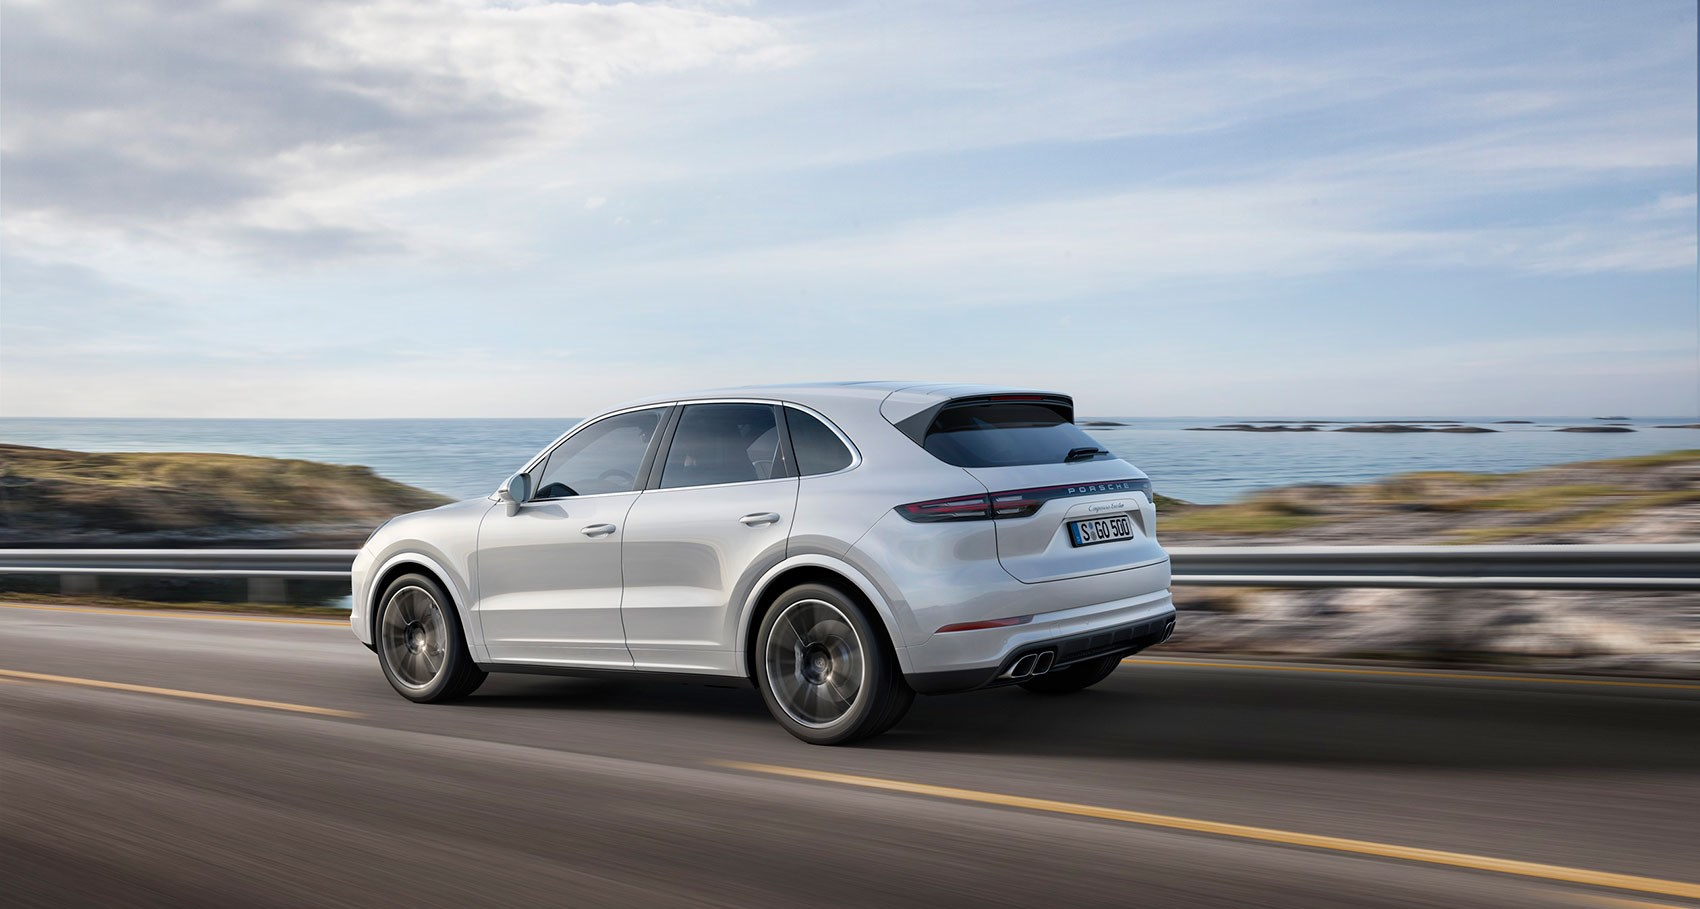 new porsche cayenne turbo unveiled for 2018 by car magazine. Black Bedroom Furniture Sets. Home Design Ideas